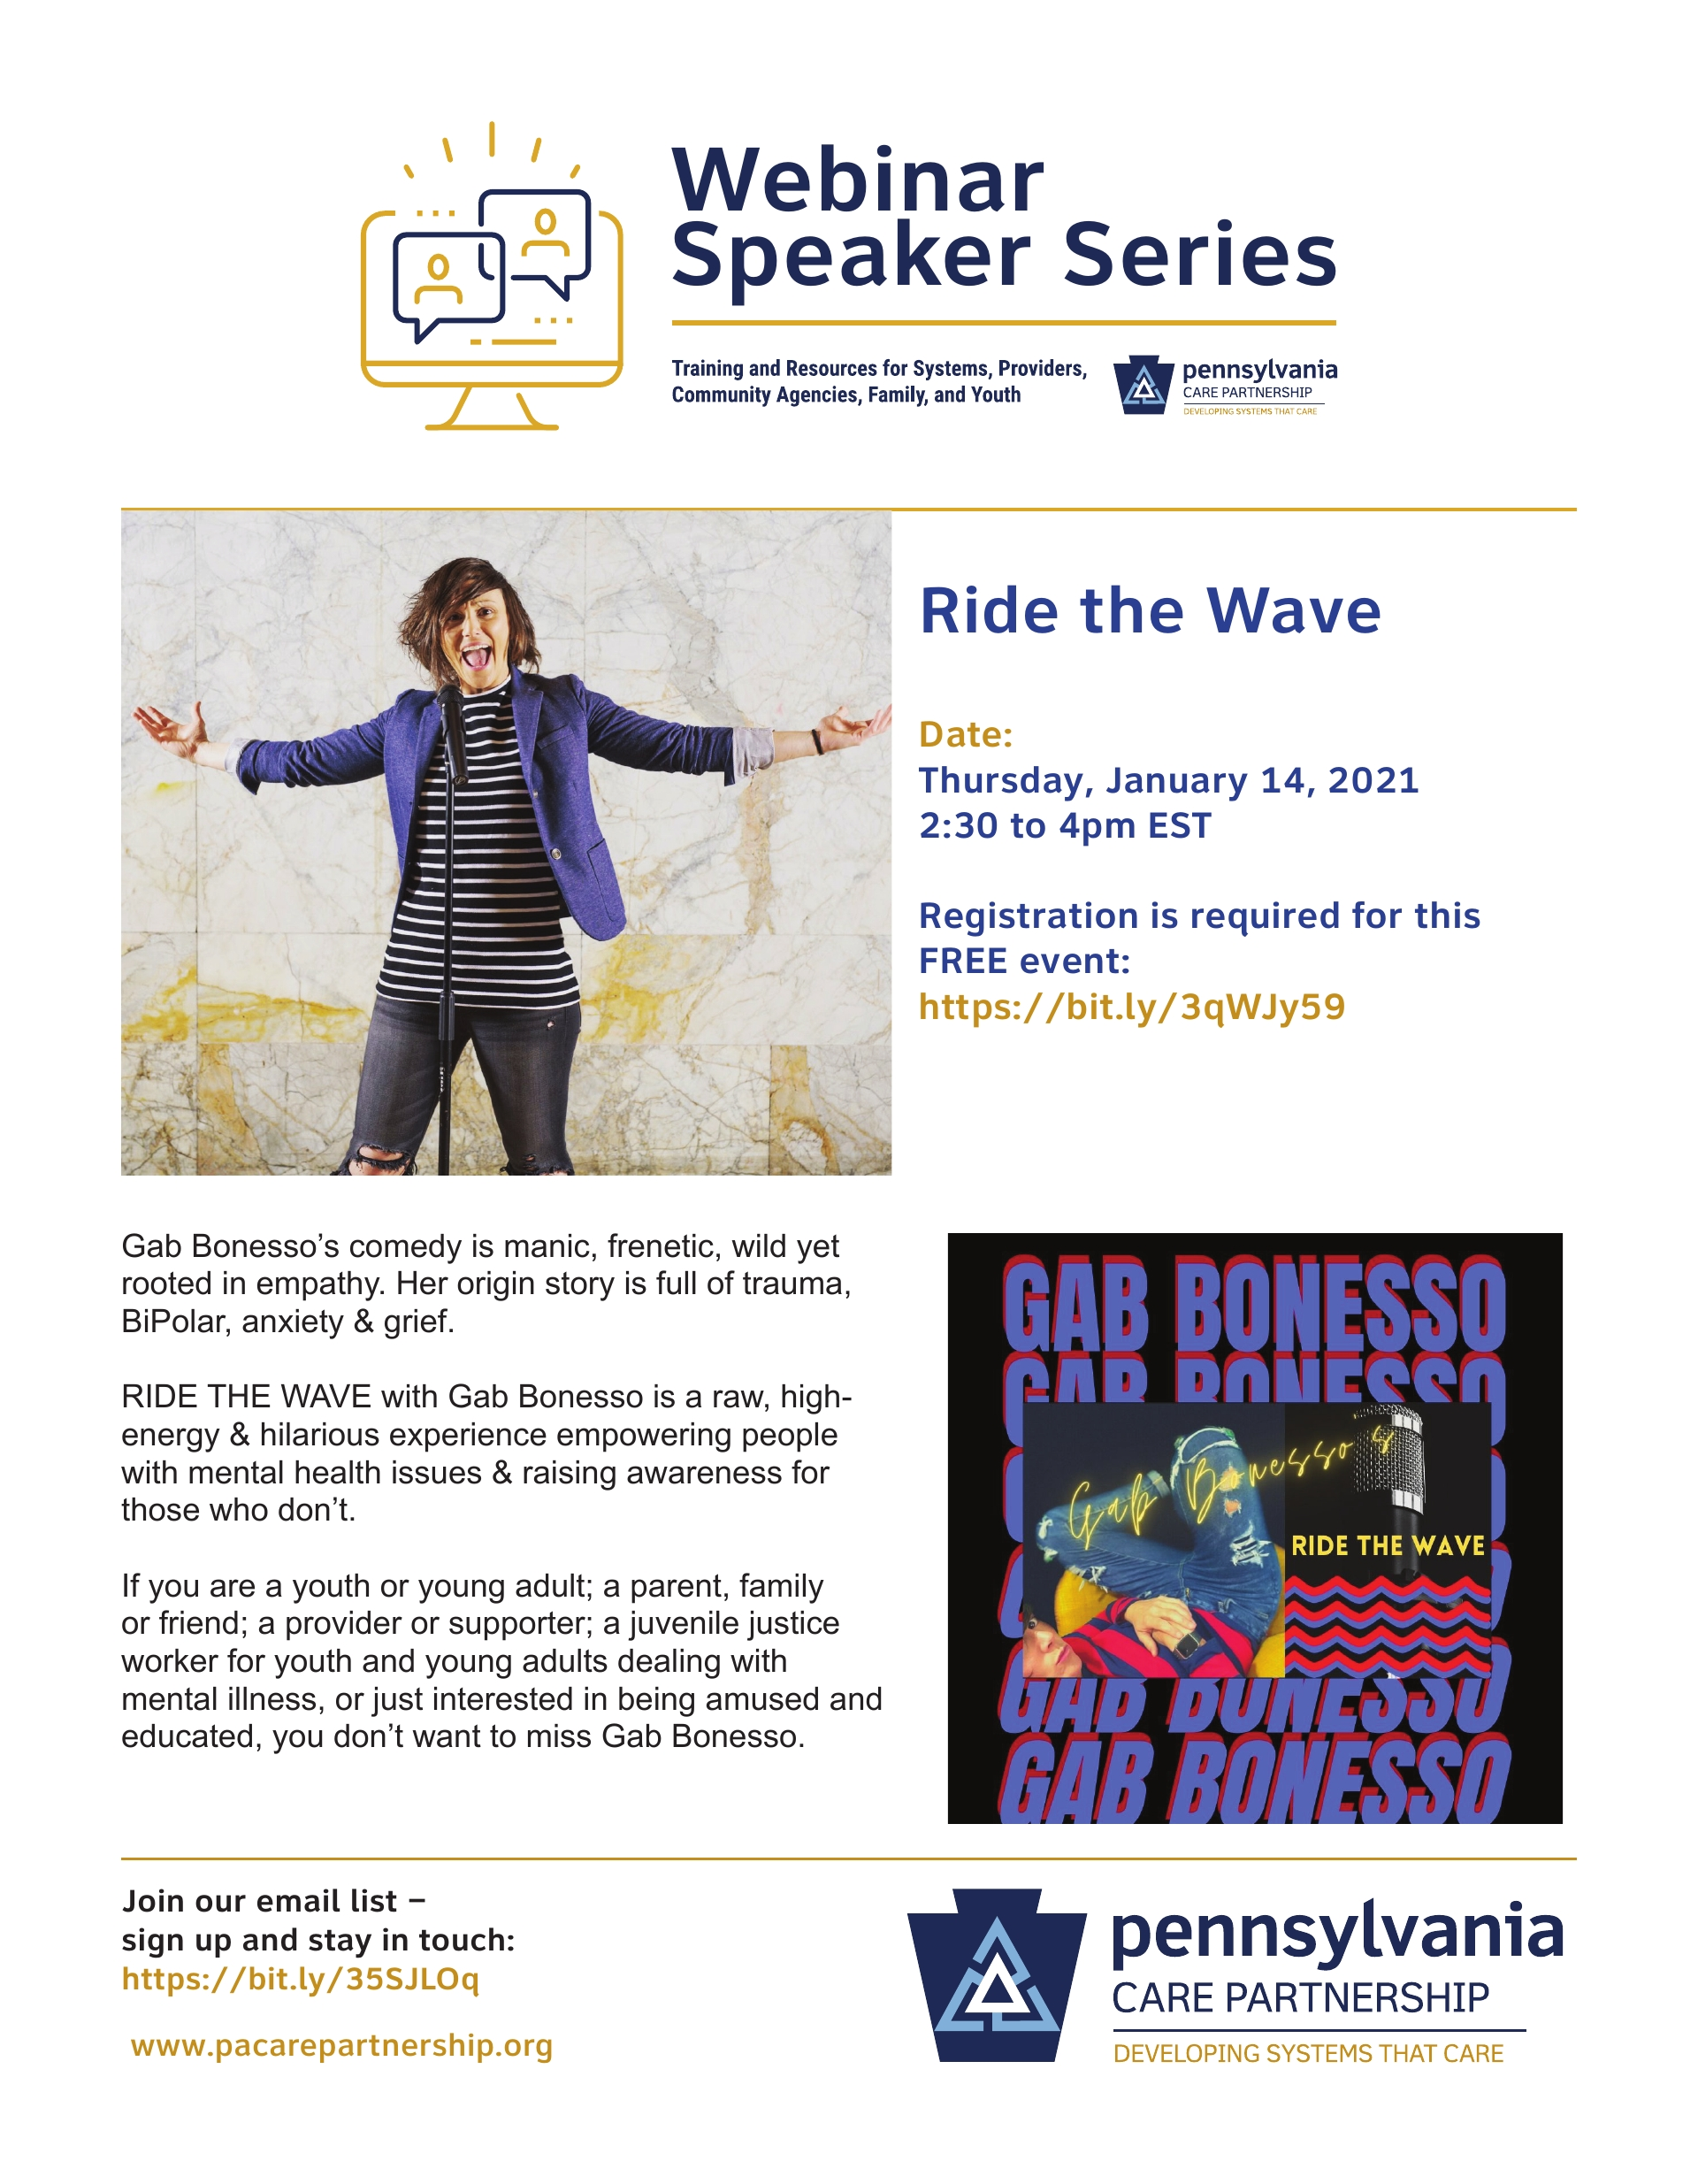 Ride the Wave with Gab! Thursday, January 14, 2021 2:30 p.m. EST